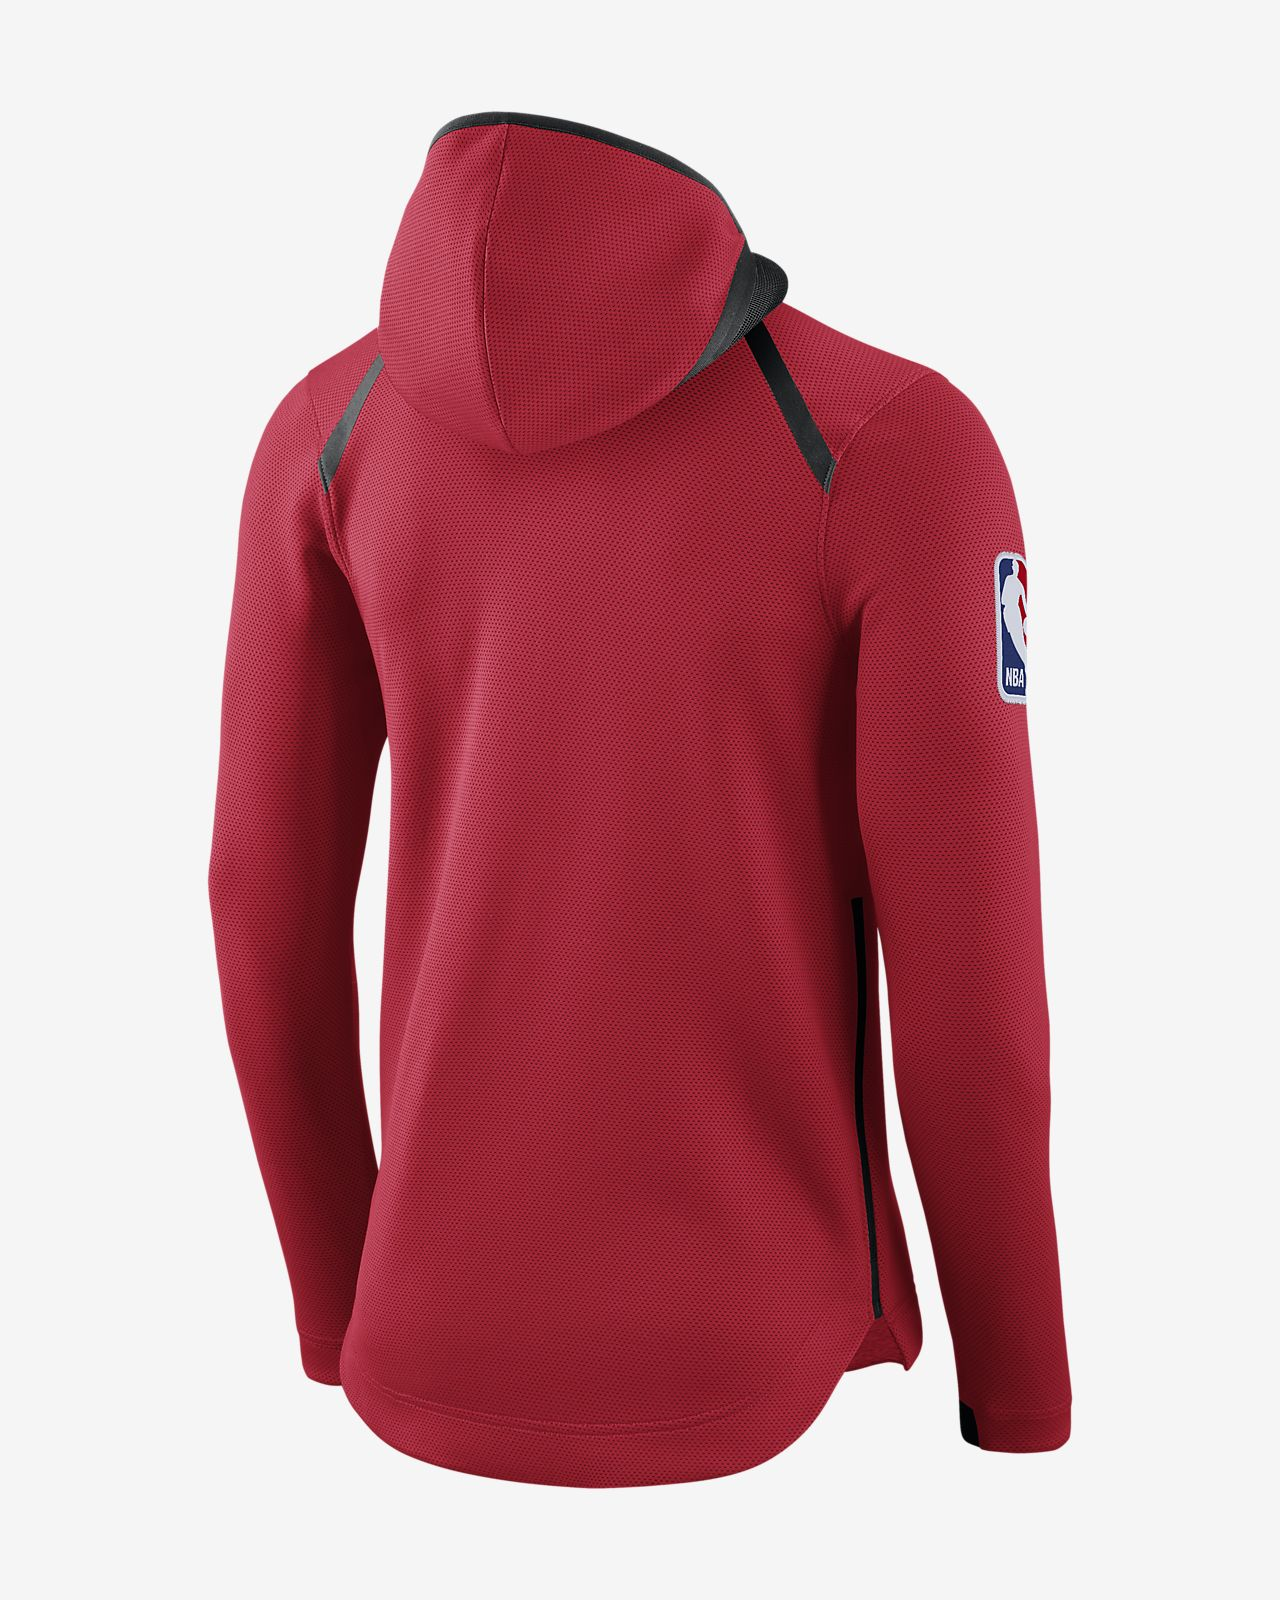 c334d0396b97 Portland Trail Blazers Nike Therma Flex Showtime Men s NBA Hoodie ...